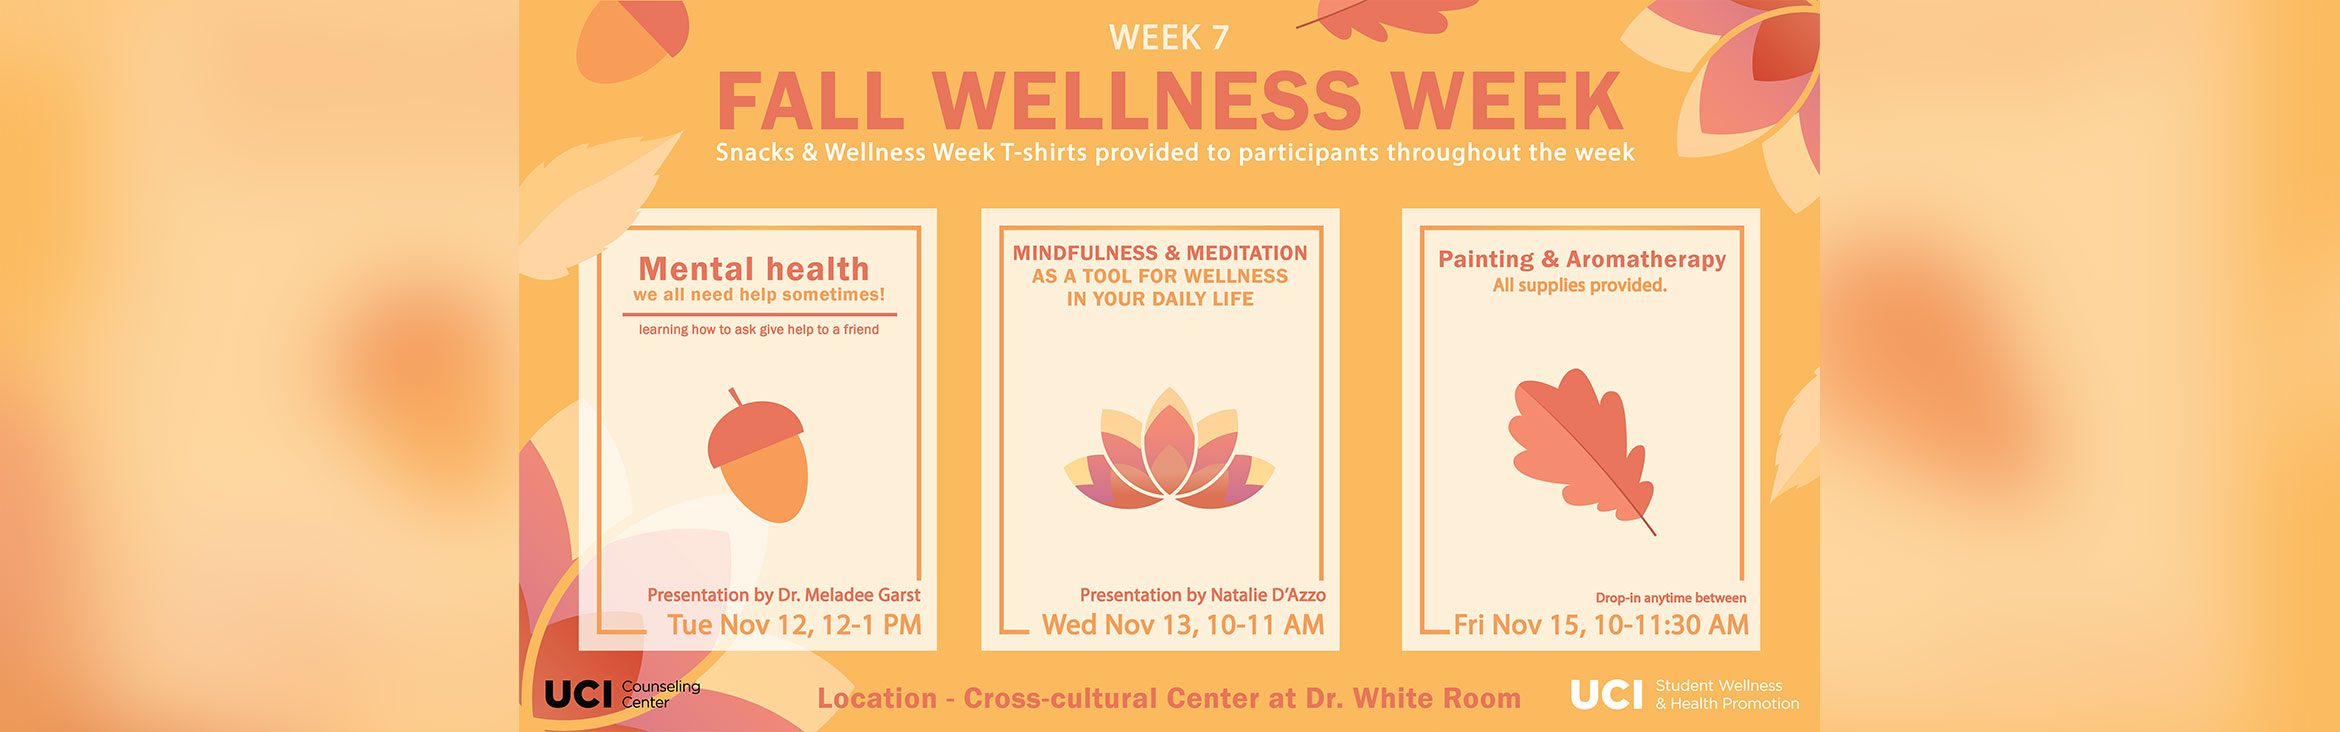 Week 7 Fall Wellness Week Snacks & Wellness Week T-Shirts provided to participants throughout the week, Location  - Cross cultural Center at Dr. White Room